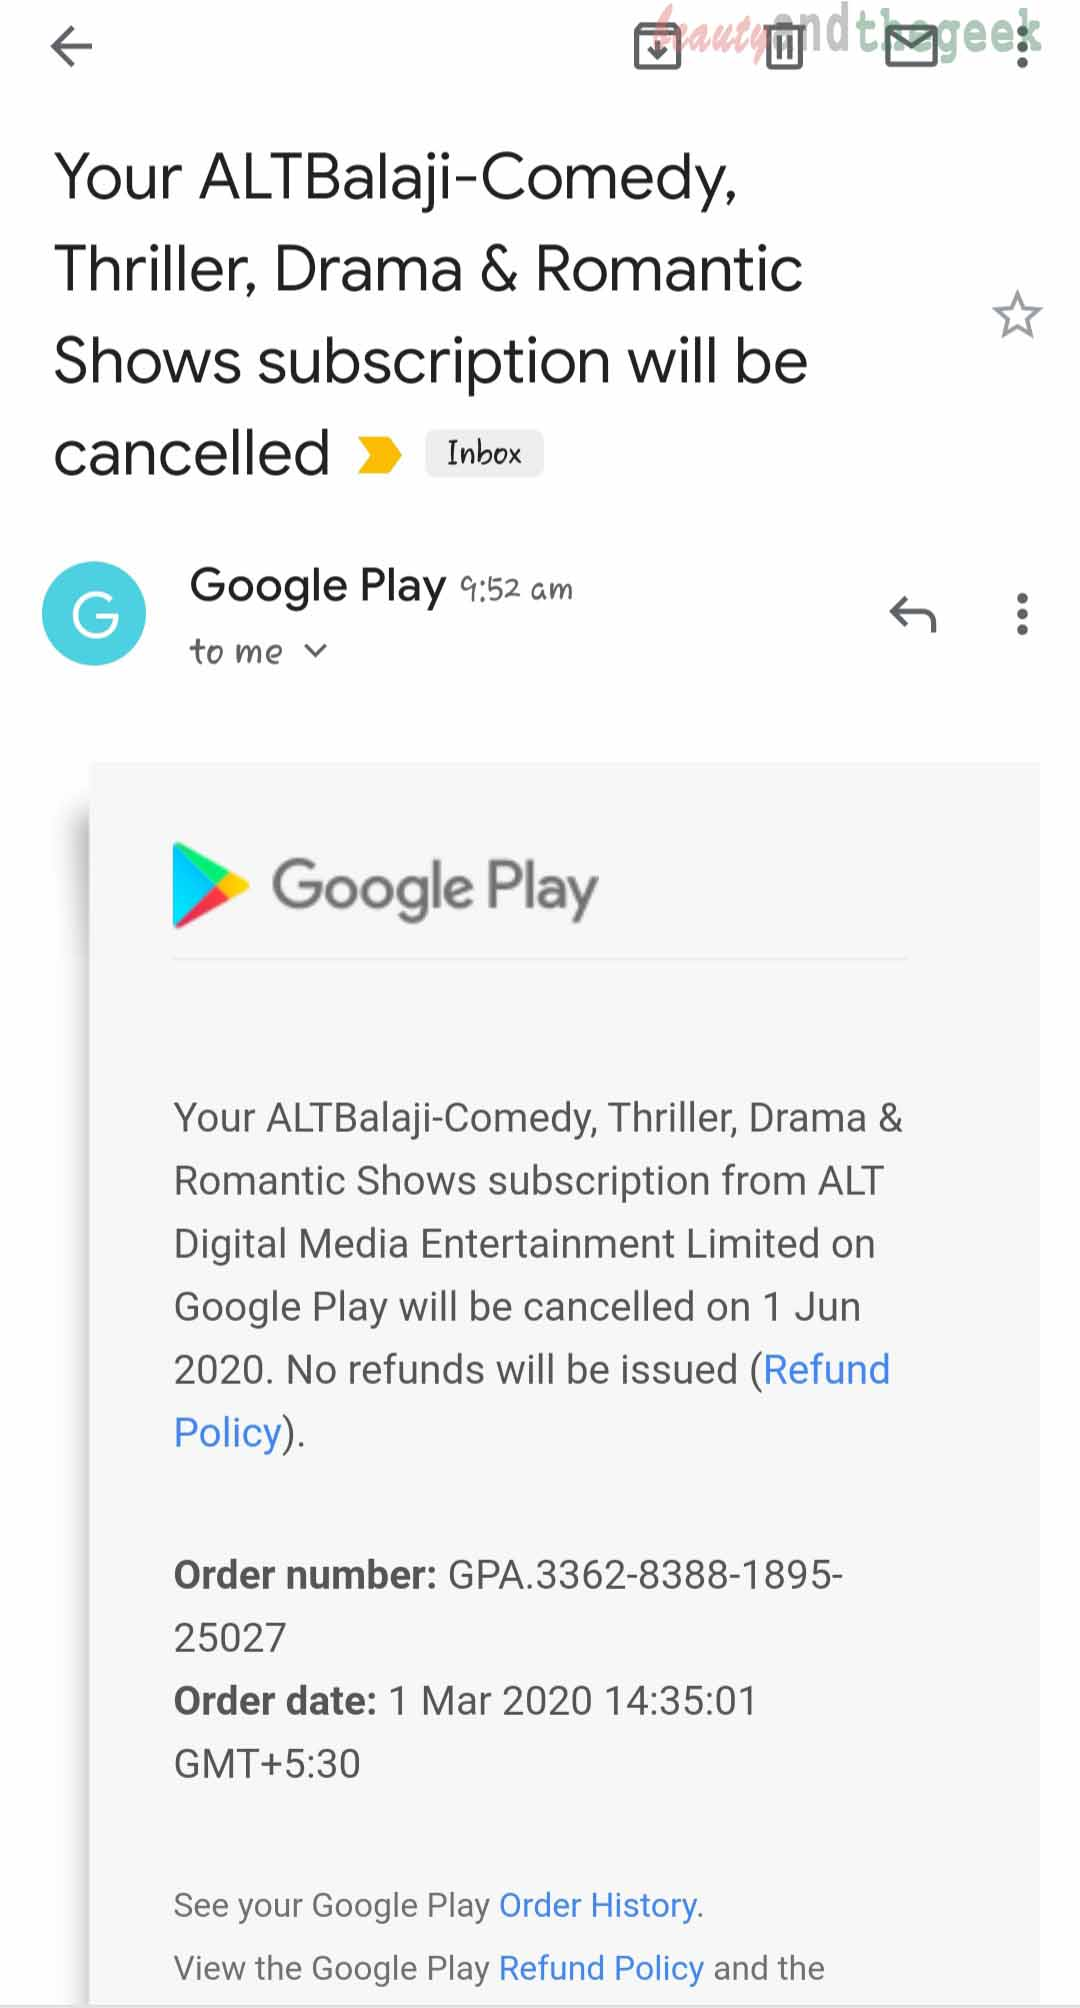 confirmation email from google play